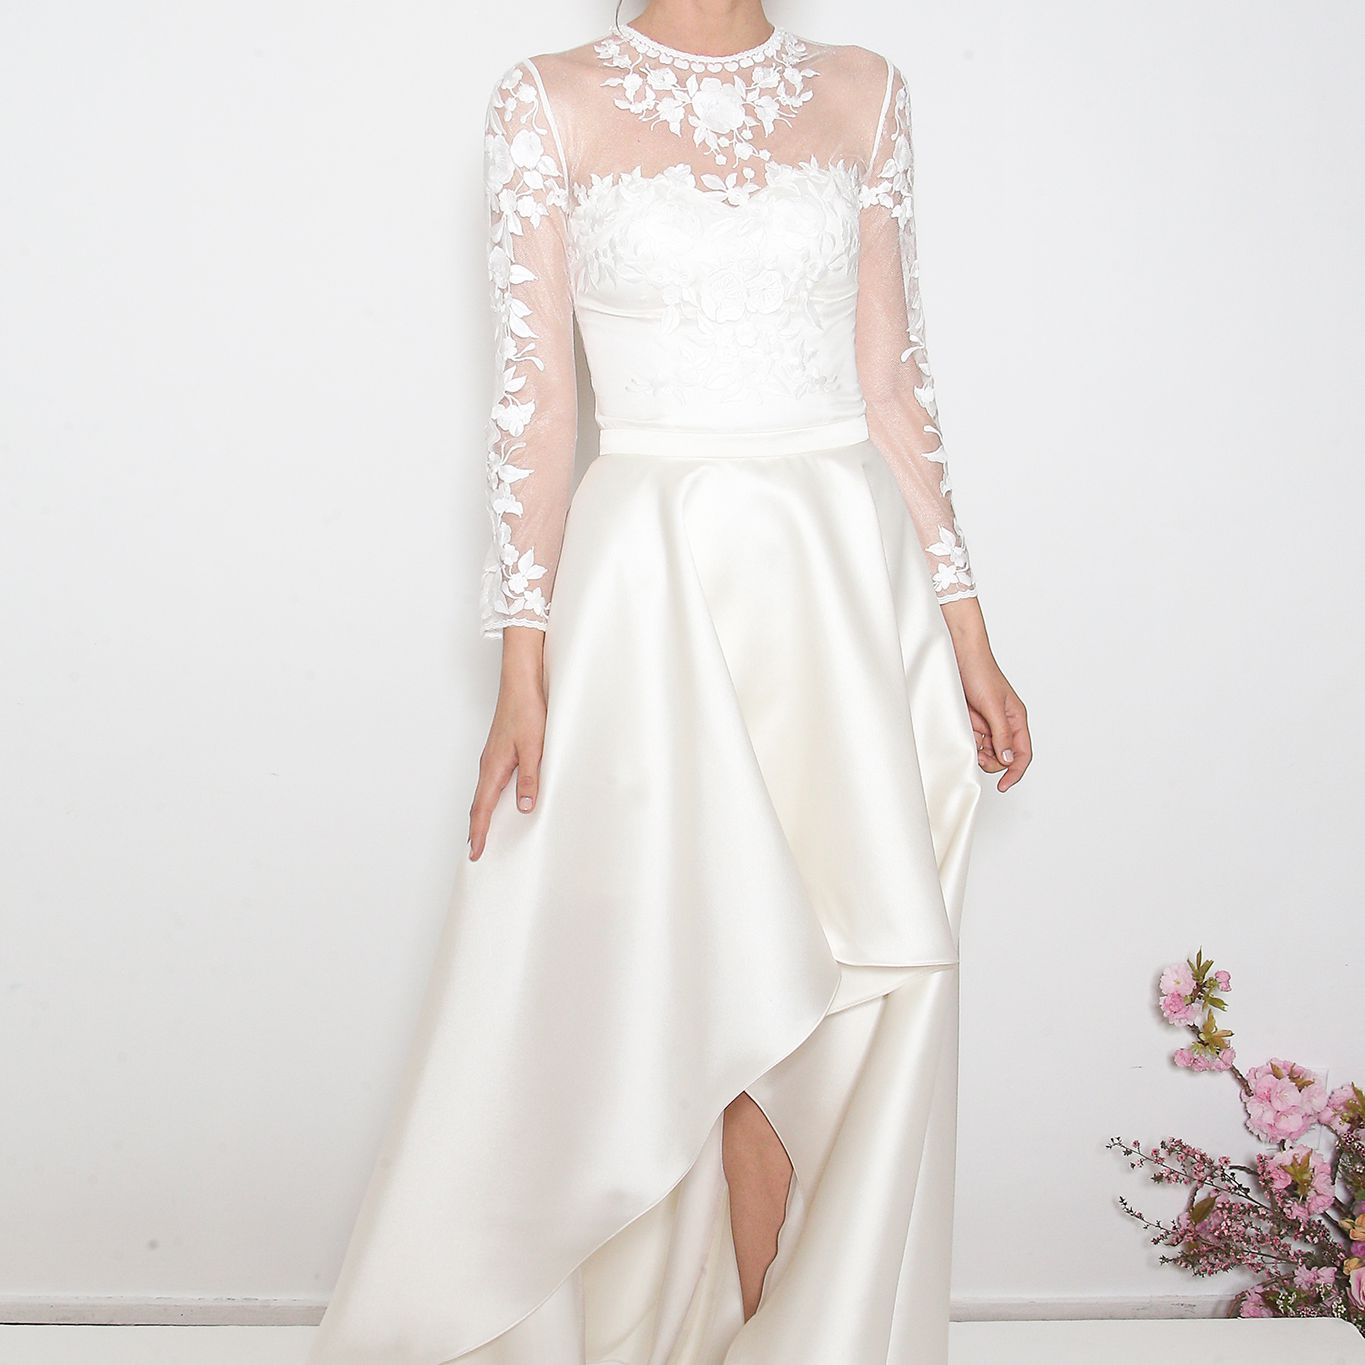 100 Wedding Dresses Perfect For Petite Figures,Wedding Dress Styles With Sleeves